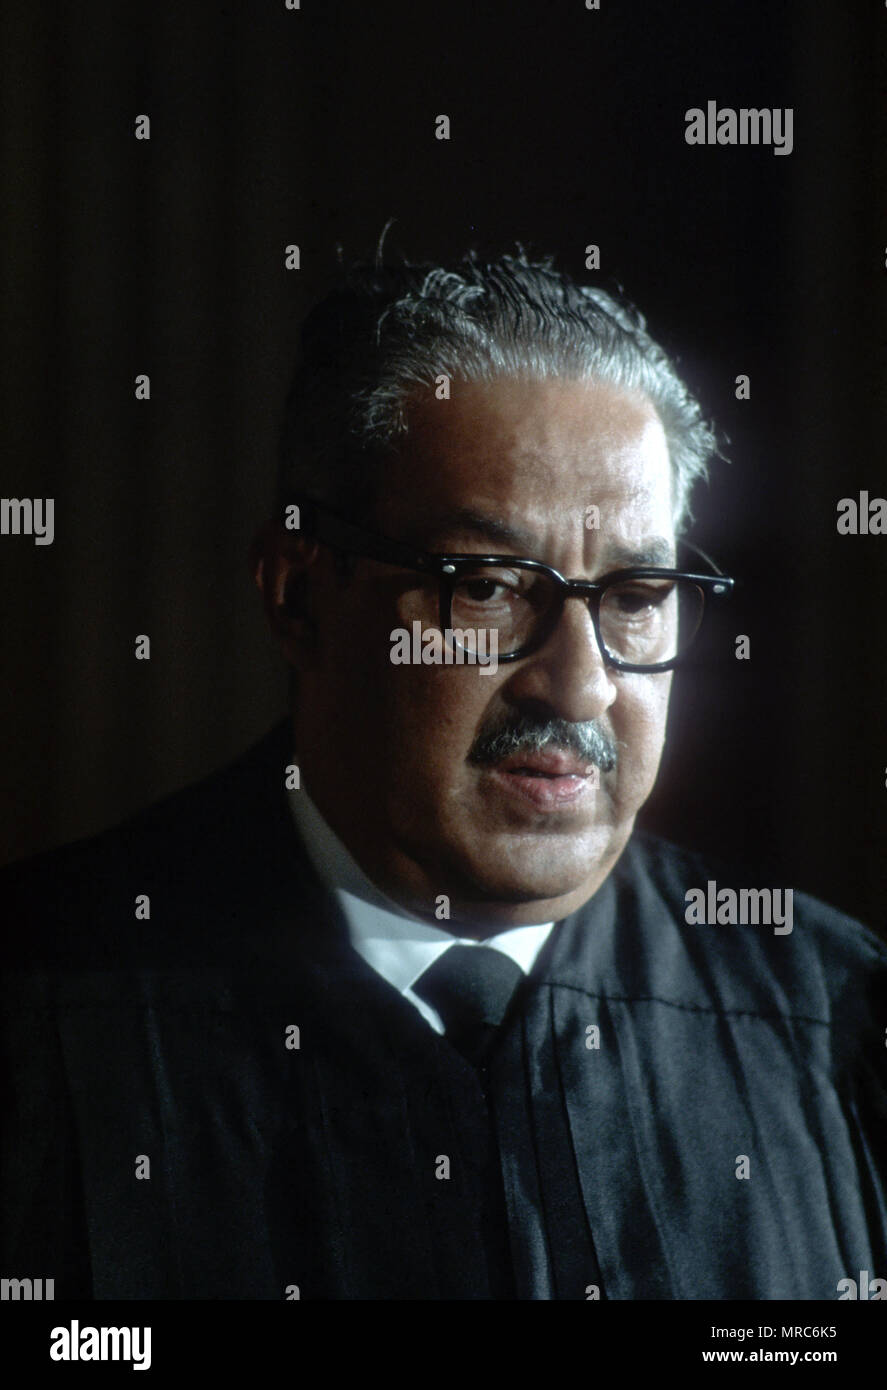 Washington, DC 1967/08/30 Supreme Court Justice Thurgood Marshall  at the official photograph of the Supreme Court in 1967.  Photo by Dennis Brack B  1 - Stock Image